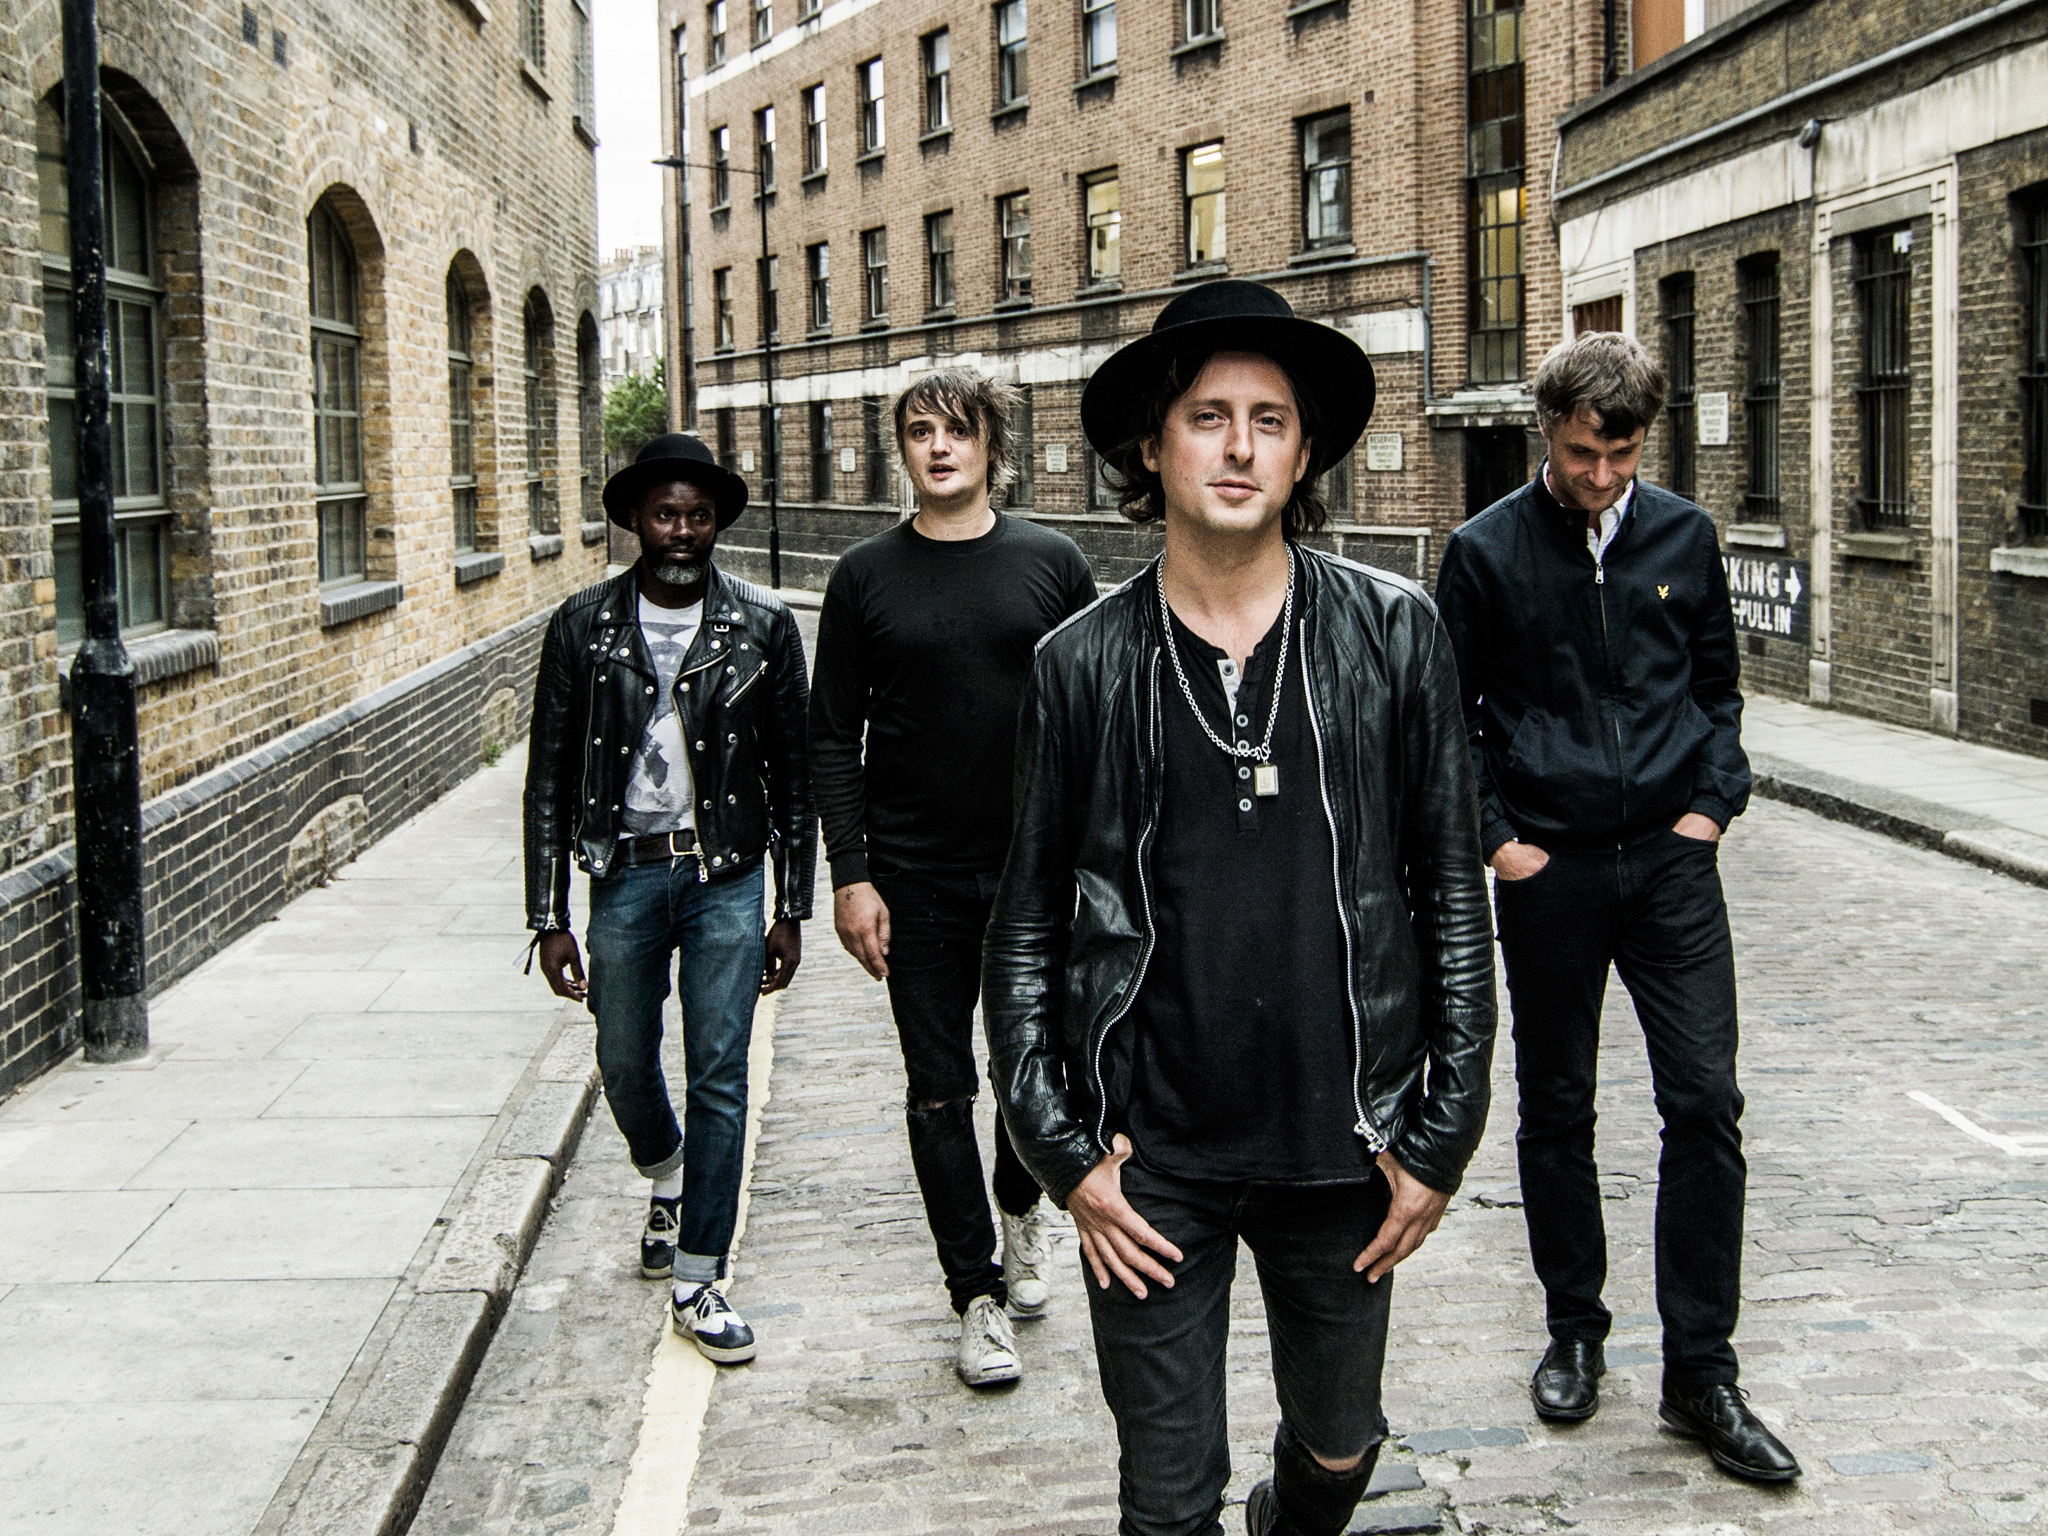 I wrote an in-depth review of The Libertines 3rd album in part because I am a huge Libertines fan, and in part because it had garnered a great deal of press attention in general.